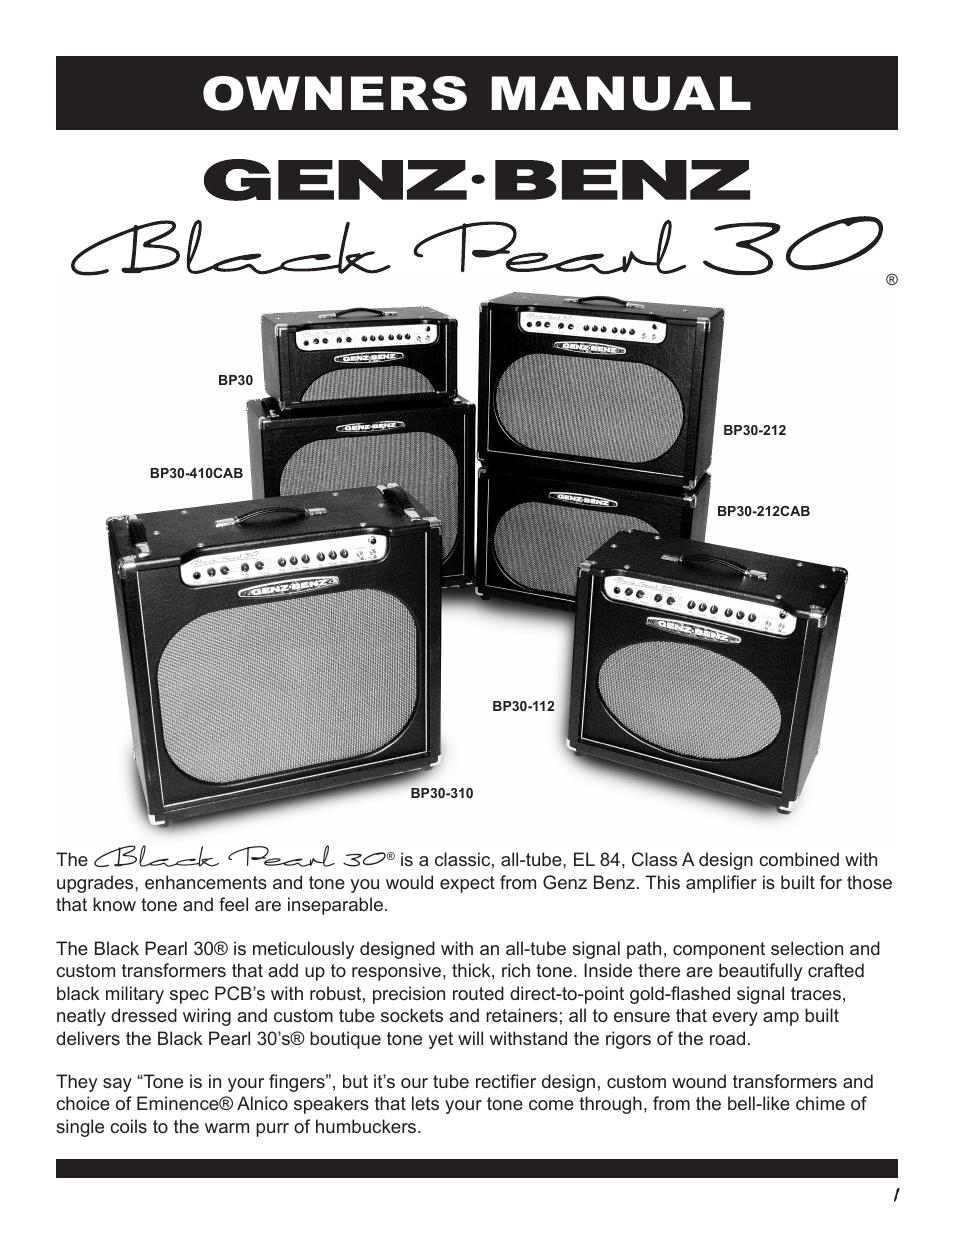 Genz Benz Black Pearl 30 Bp30 User Manual 8 Pages Also